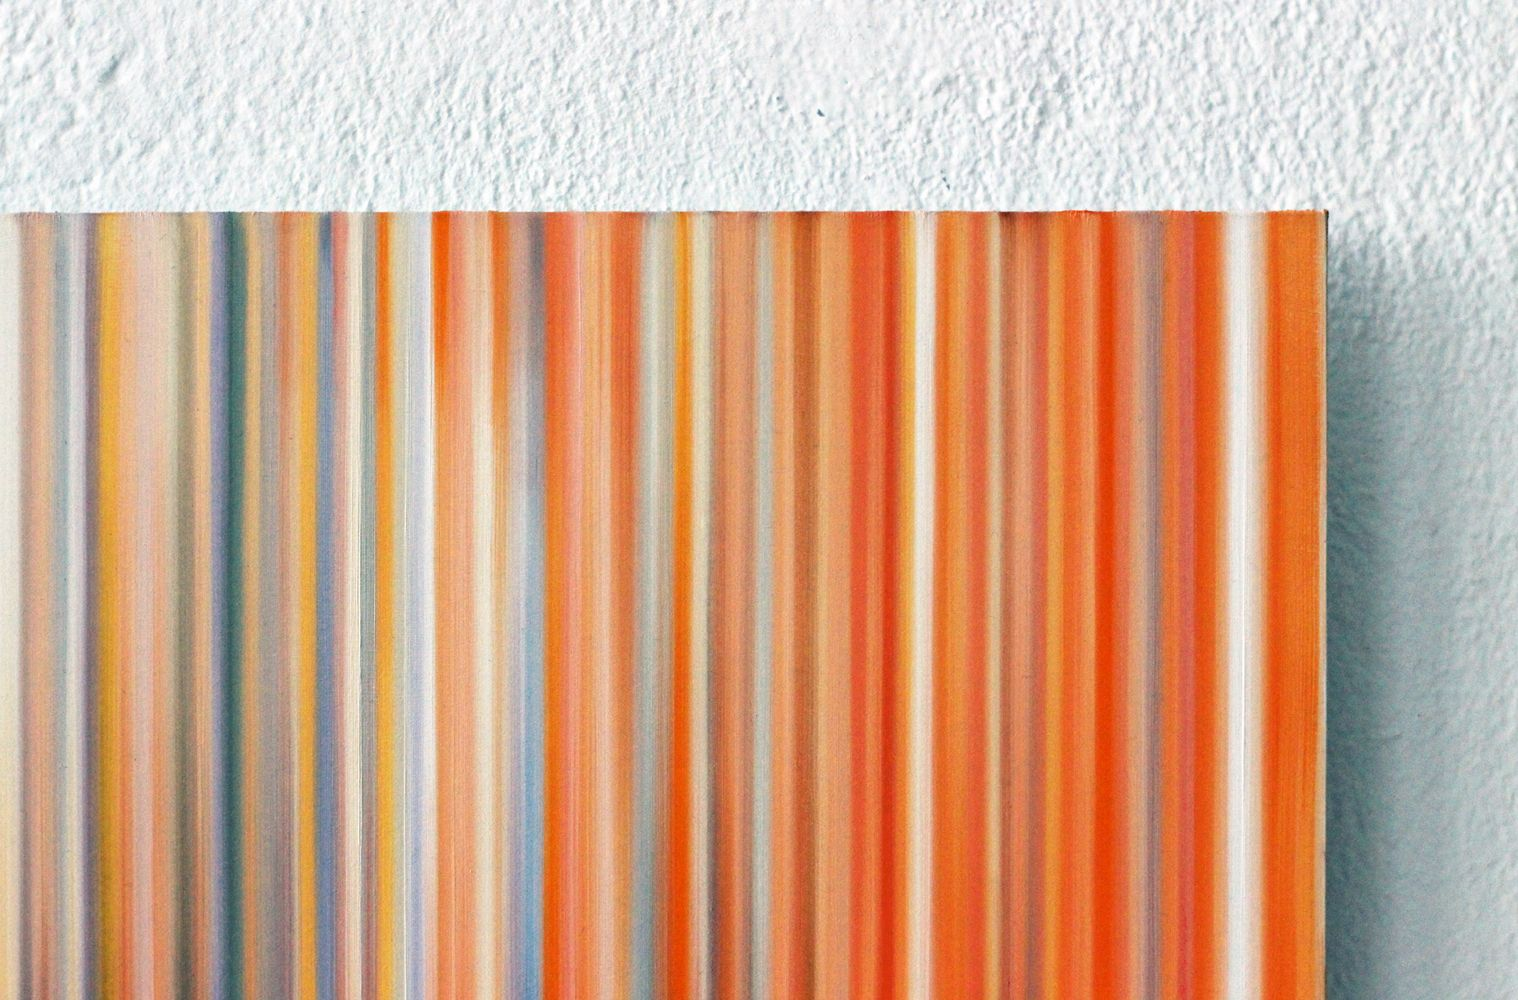 Light'n'Lines No.15 (BlackWhiteOrange),Doris Marten,Peinture contemporaine, detail 3